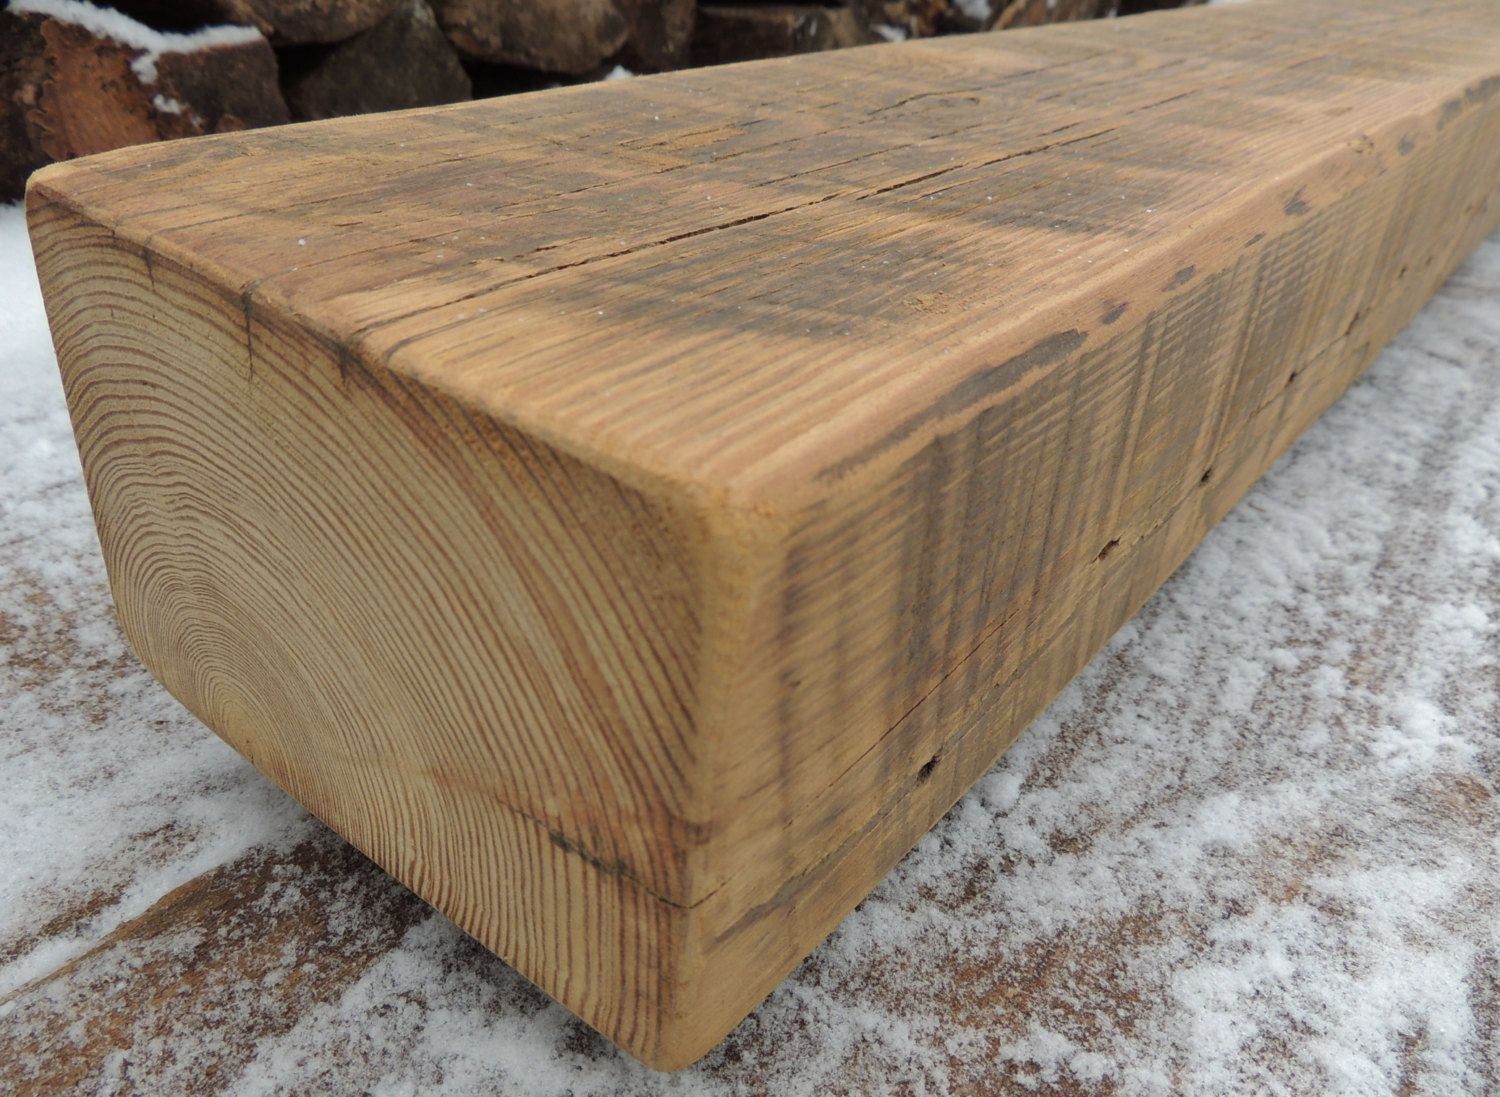 Rustic Barn Beam Reclaimed Douglas Fir Fireplace Mantel Or Mantle Shelf 62 1 2 X 5 3 4 X 4 Over 100 Years Old Fireplace Mantels Barn Beams Rustic Fireplace Mantels